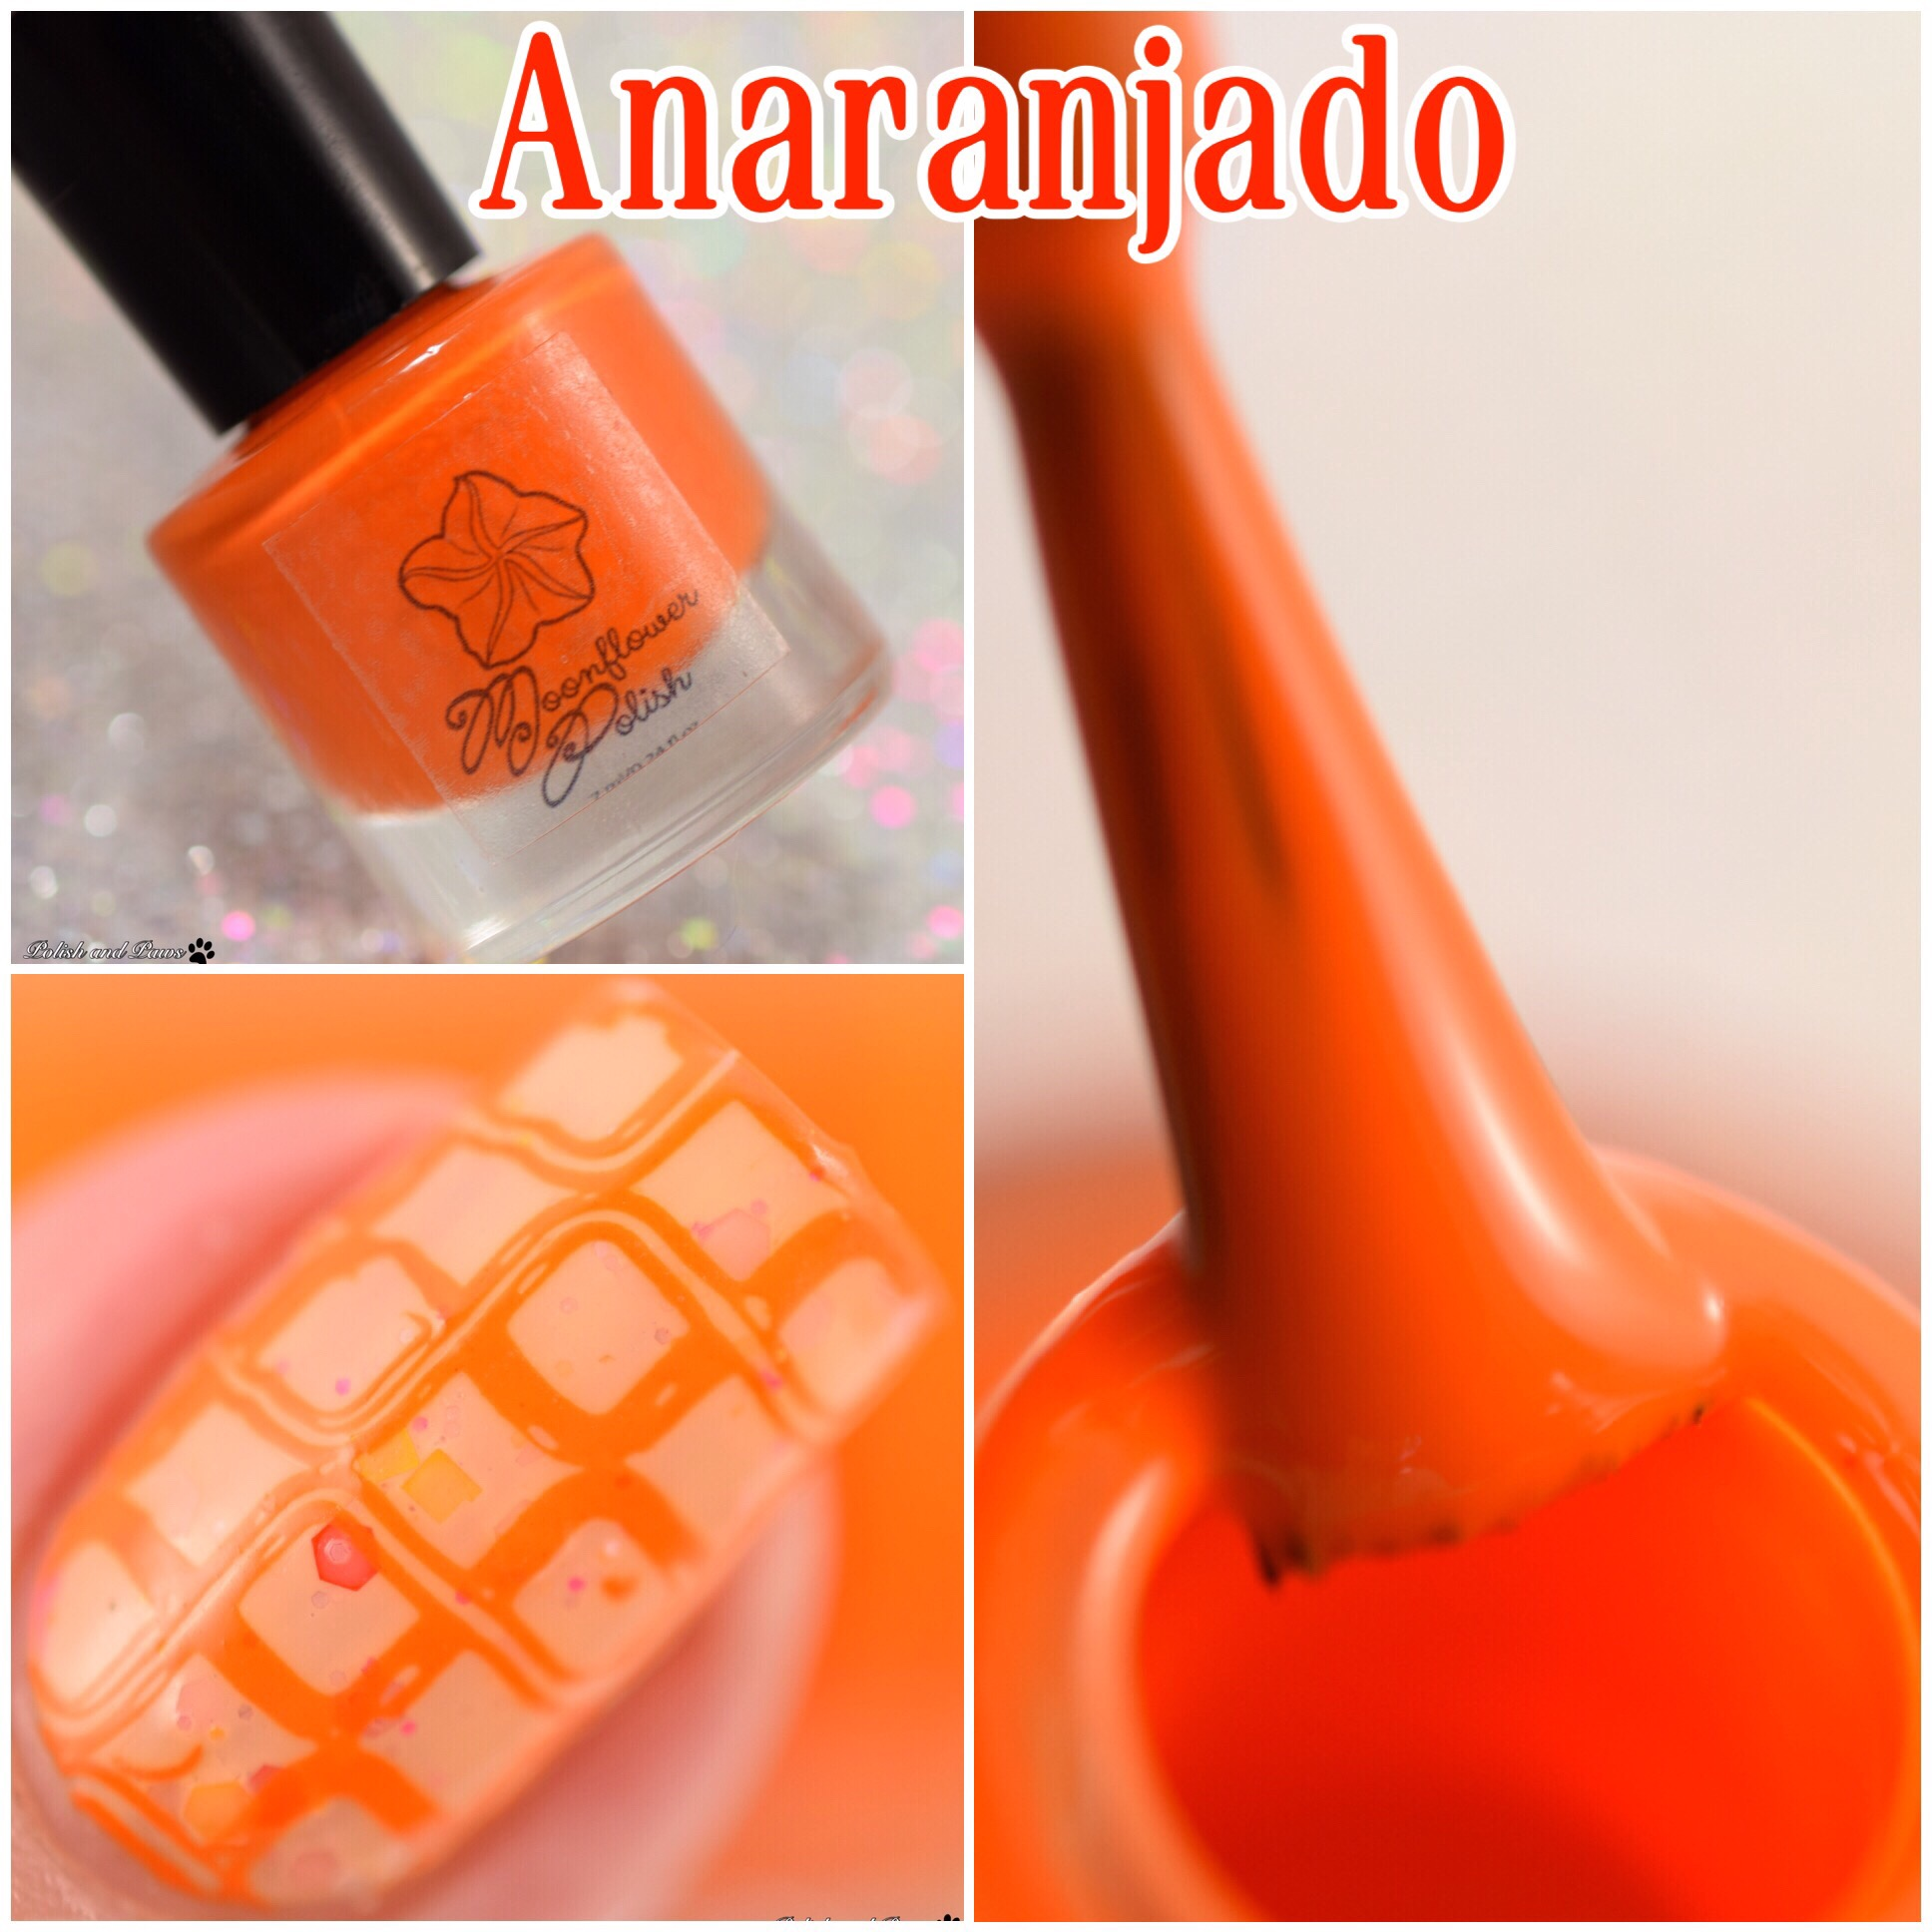 Moonflower Polish Anaranjado